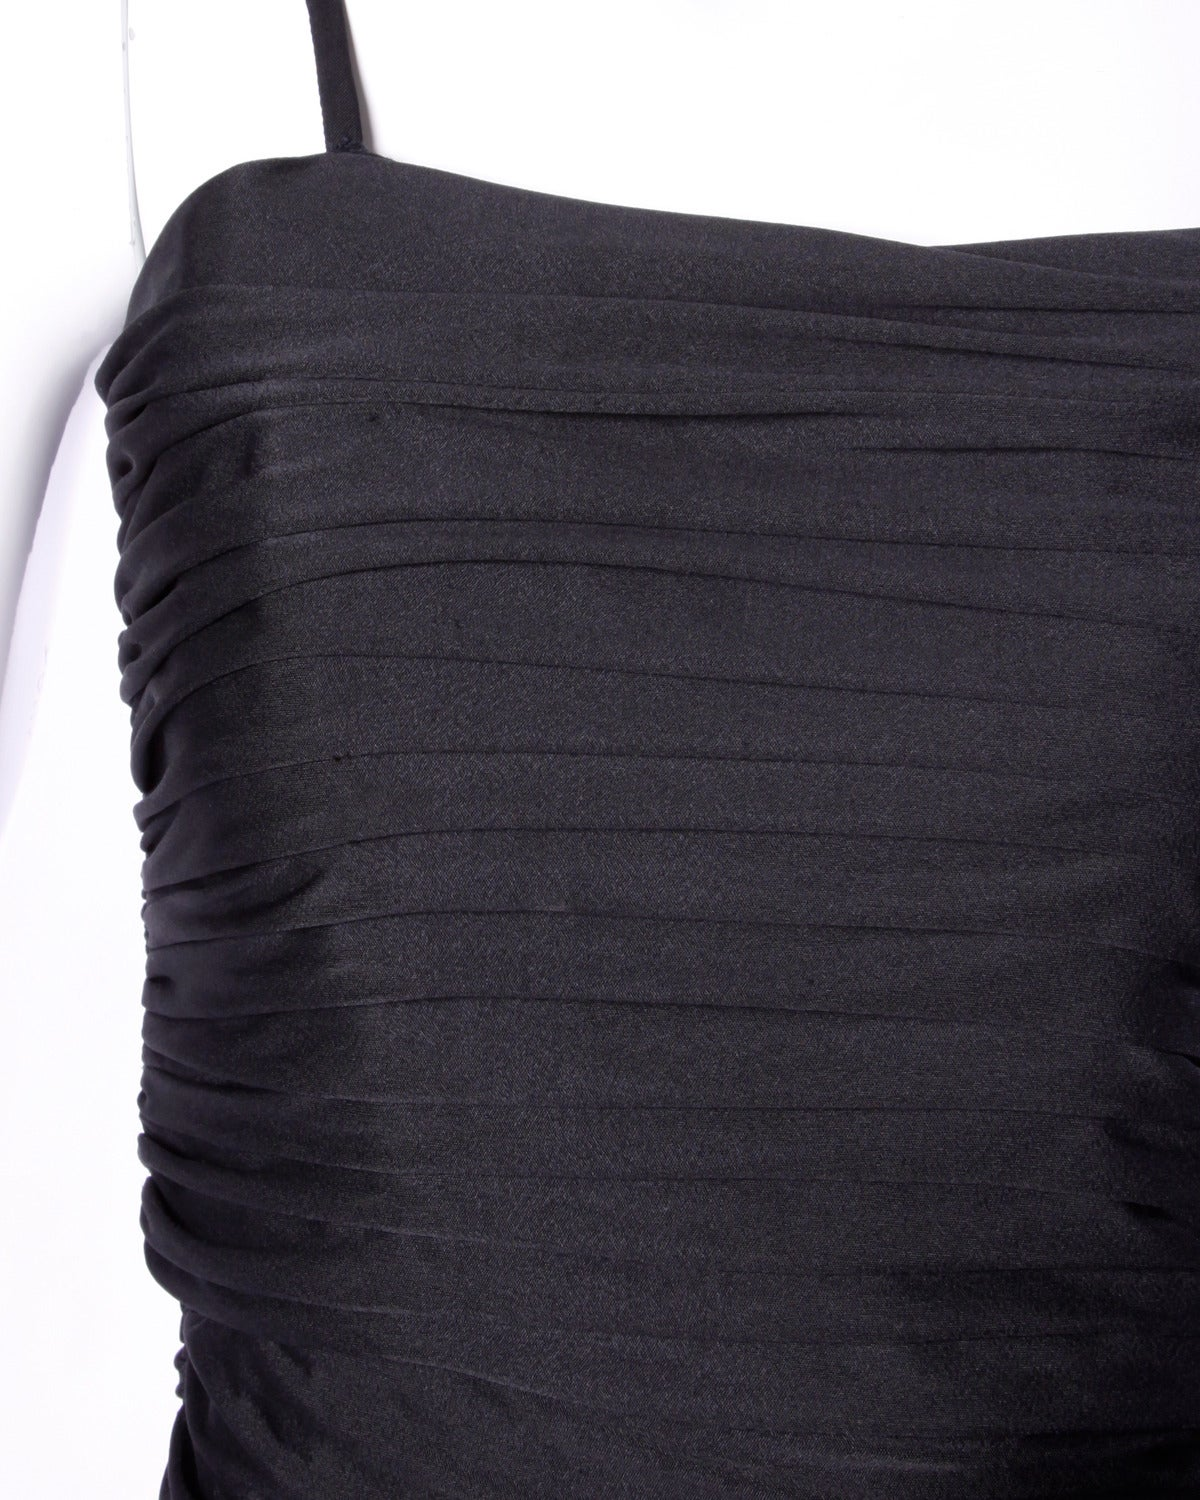 Lilli Diamond Vintage 1970s 70s Black Asymmetric Ruched Cocktail Dress In Excellent Condition For Sale In Sparks, NV